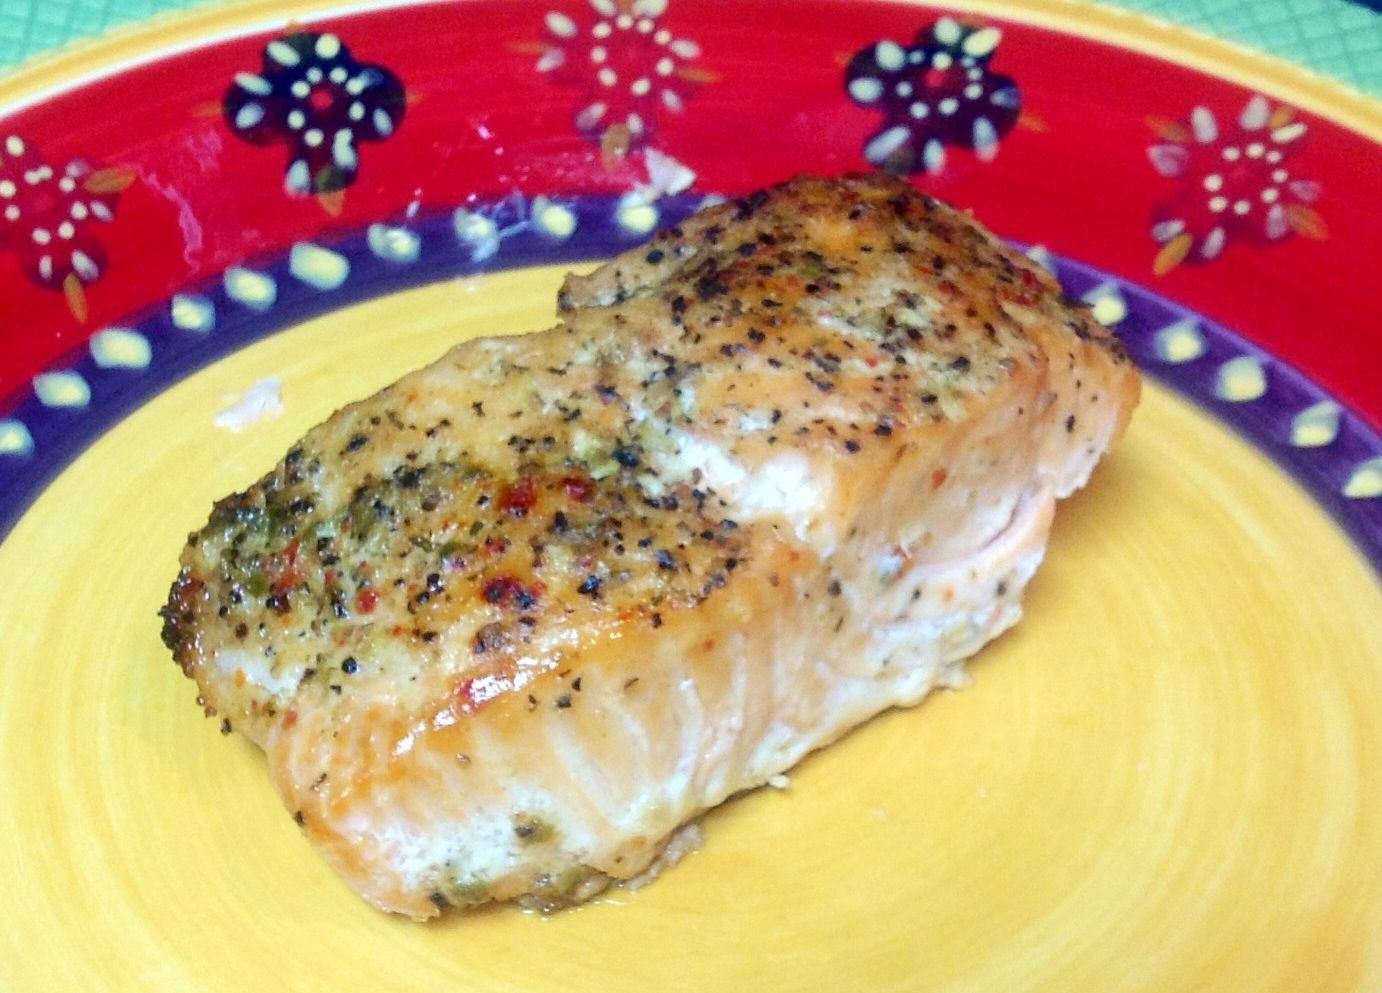 California garlic Medley seasoned Salmon baked in the oven.  Awesome